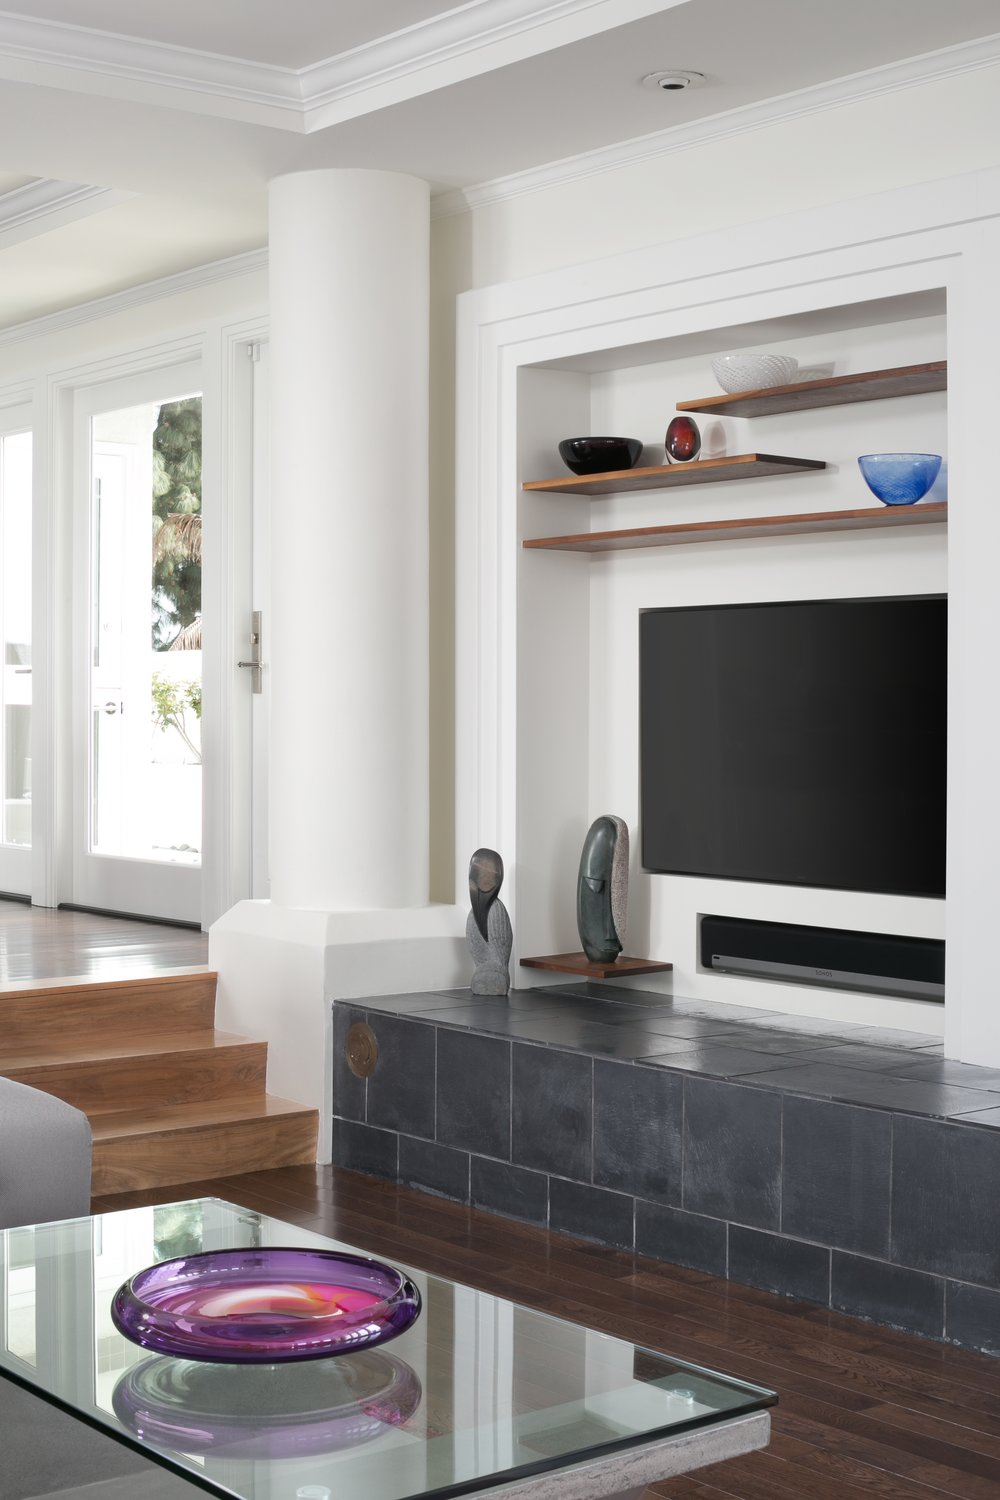 This post-modern living room features a built-in entertainment center with floating walnut shelves and a matte tile bench